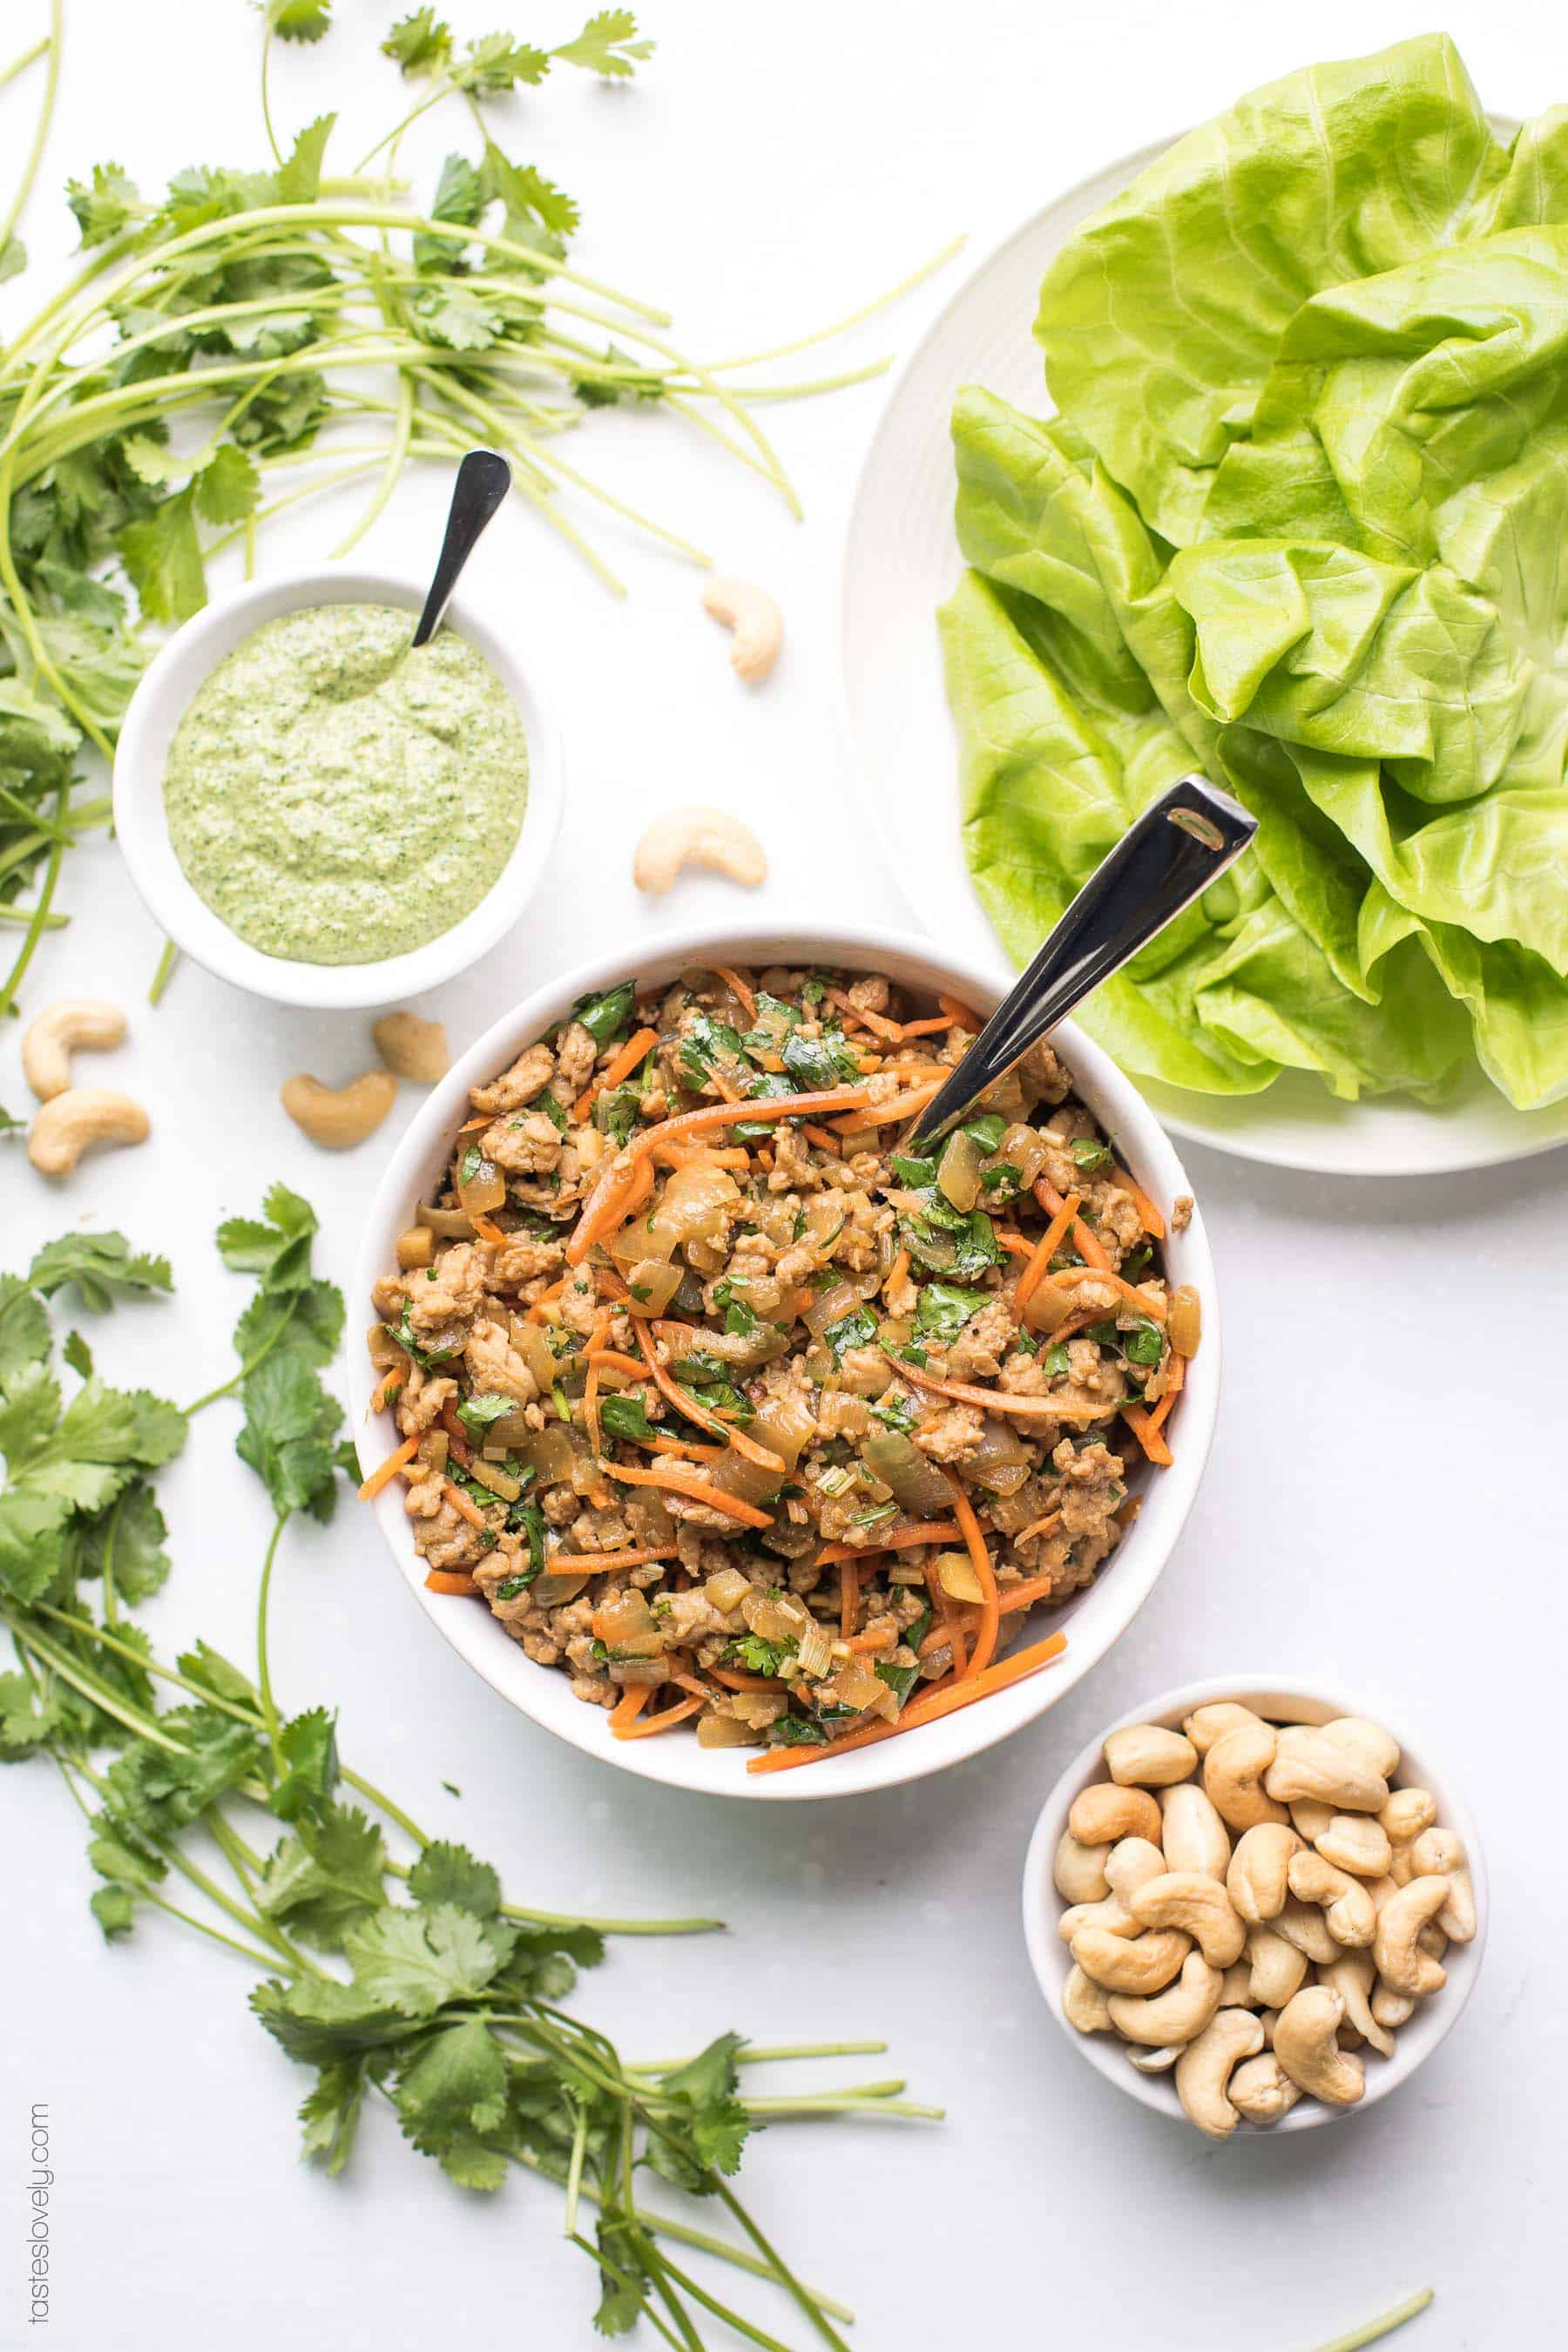 Paleo + Whole30 Thai Chicken Lettuce Wraps - a quick and healthy dinner recipe with ground chicken, sauteed onions, a thai sauce, cilantro and shredded carrots. Topped with a bright and fresh herby green dressing and cashews. #paleo #whole30 #glutenfree #grainfree #dairyfree #sugarfree #keto #cleaneating #realfood